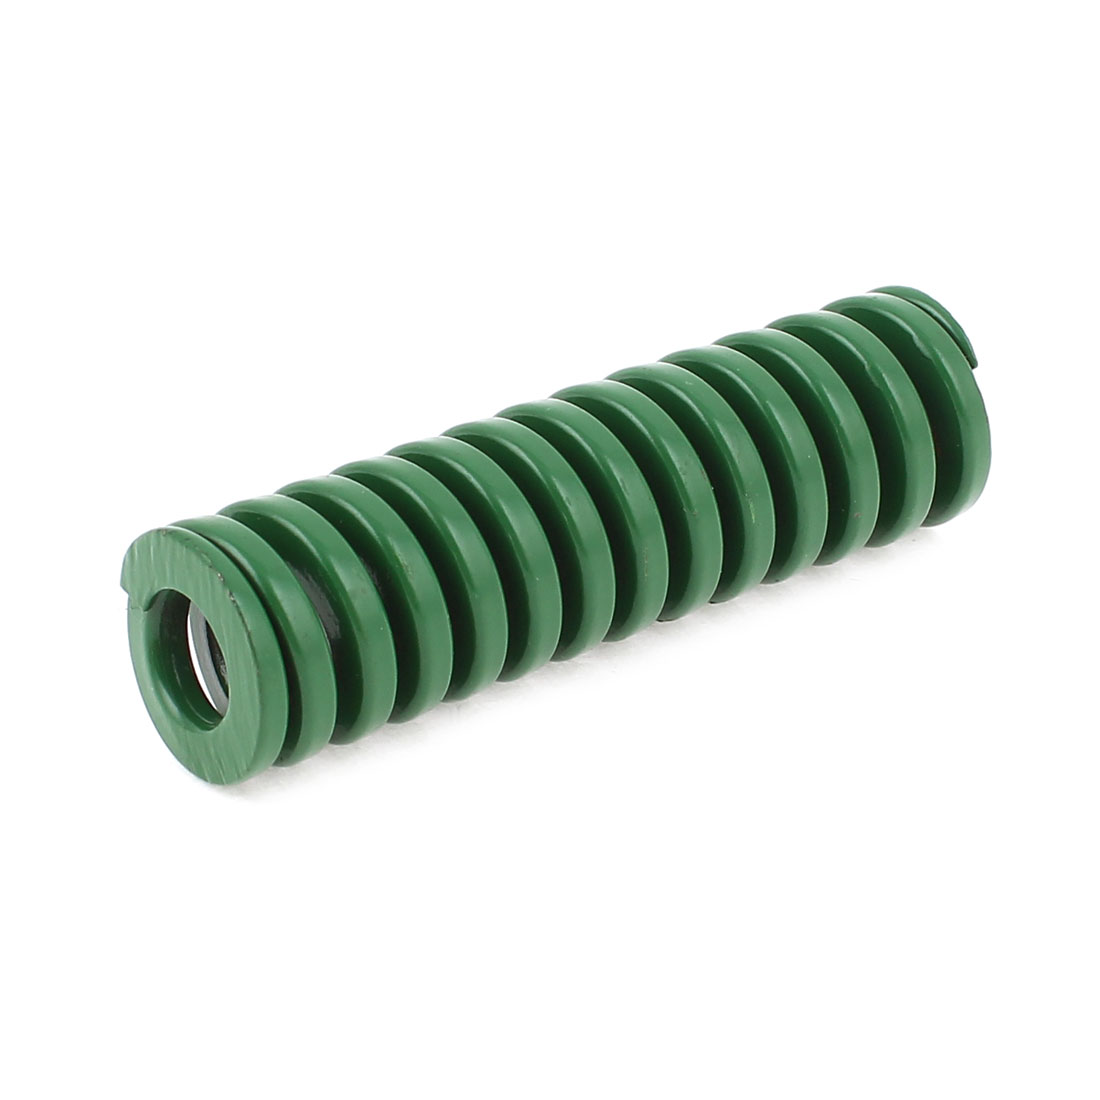 Green Chromium Alloy Steel Section Mould Die Spring 16mm x 8mm x 56mm